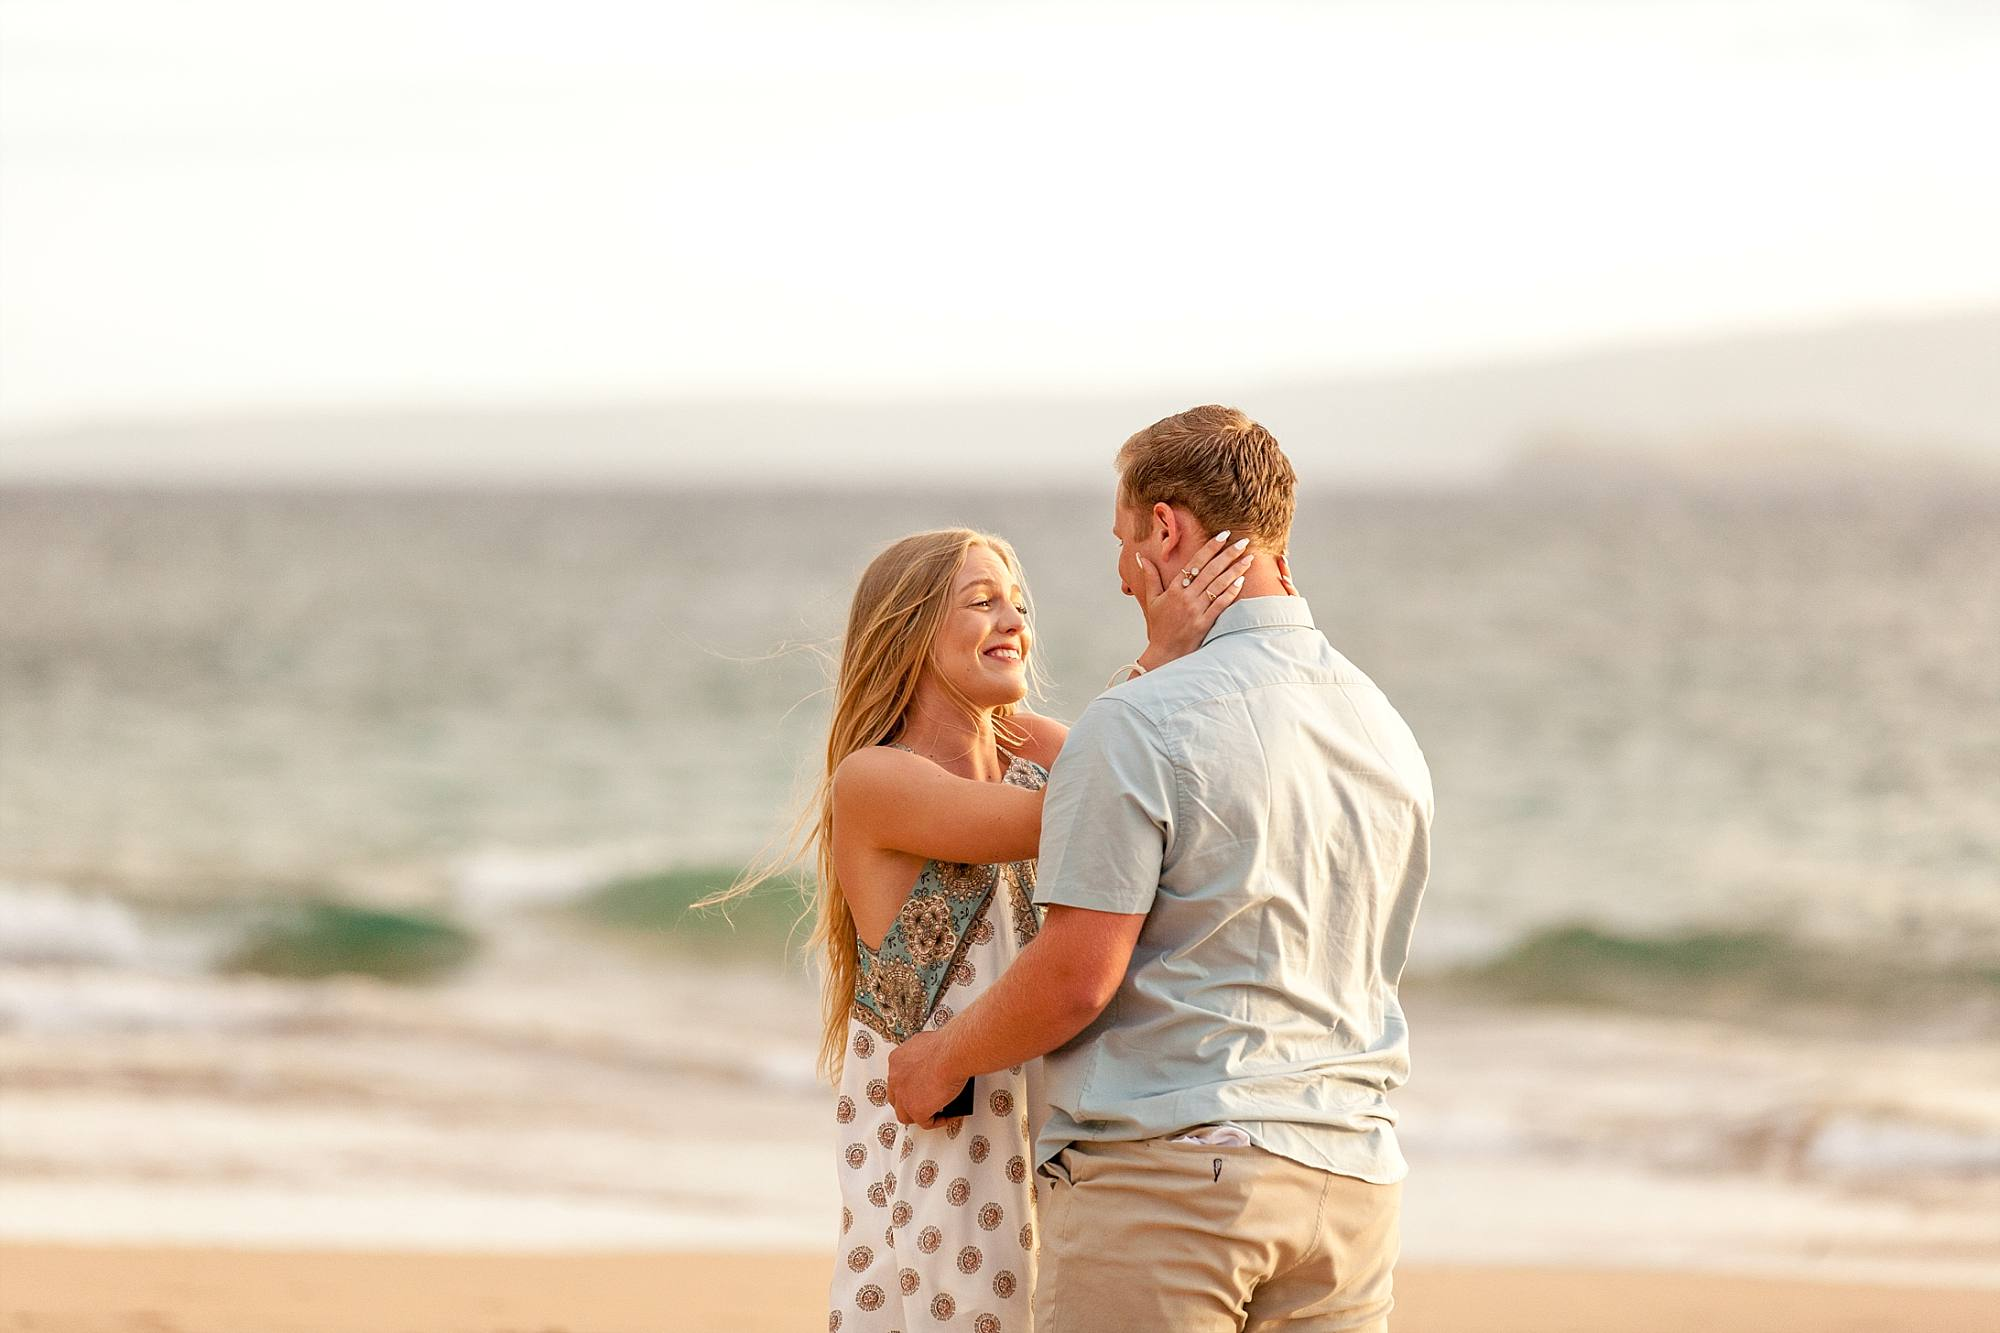 newly engaged couple just after proposal and woman smiling at her now fiance